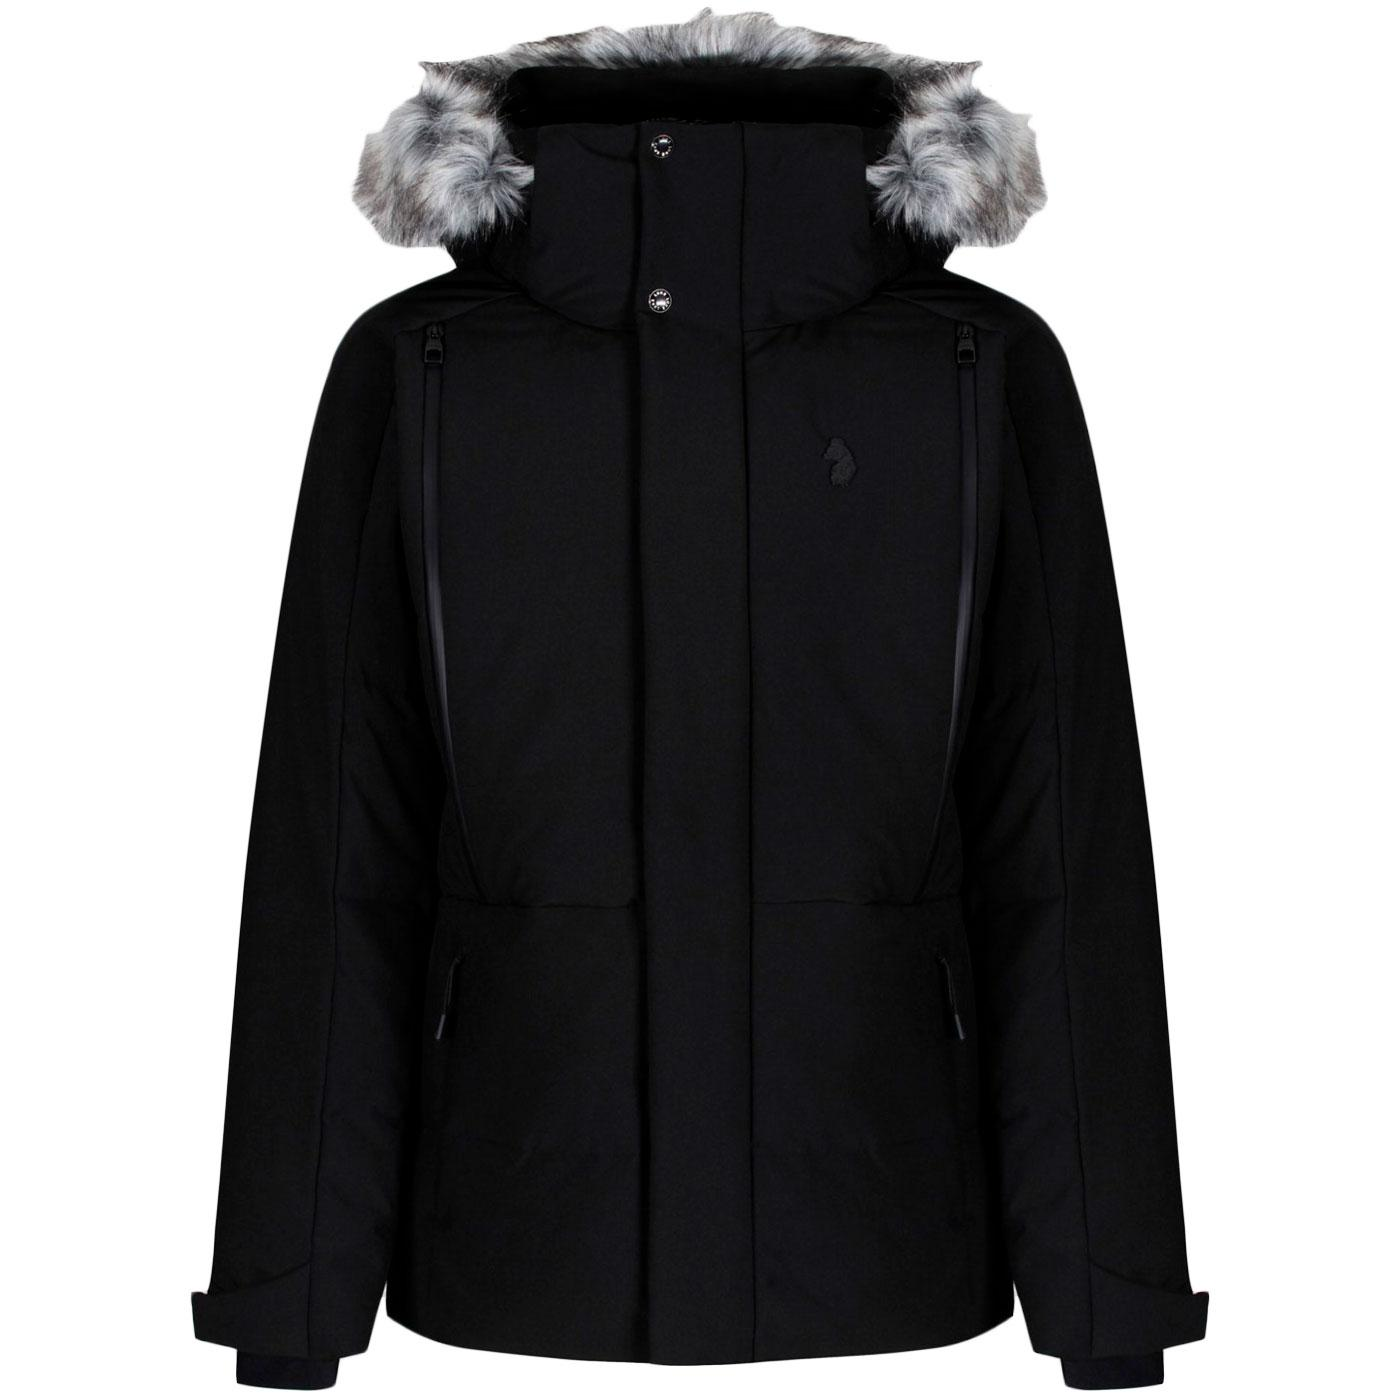 Four In Every Port LUKE 1977 Padded Parka Jacket